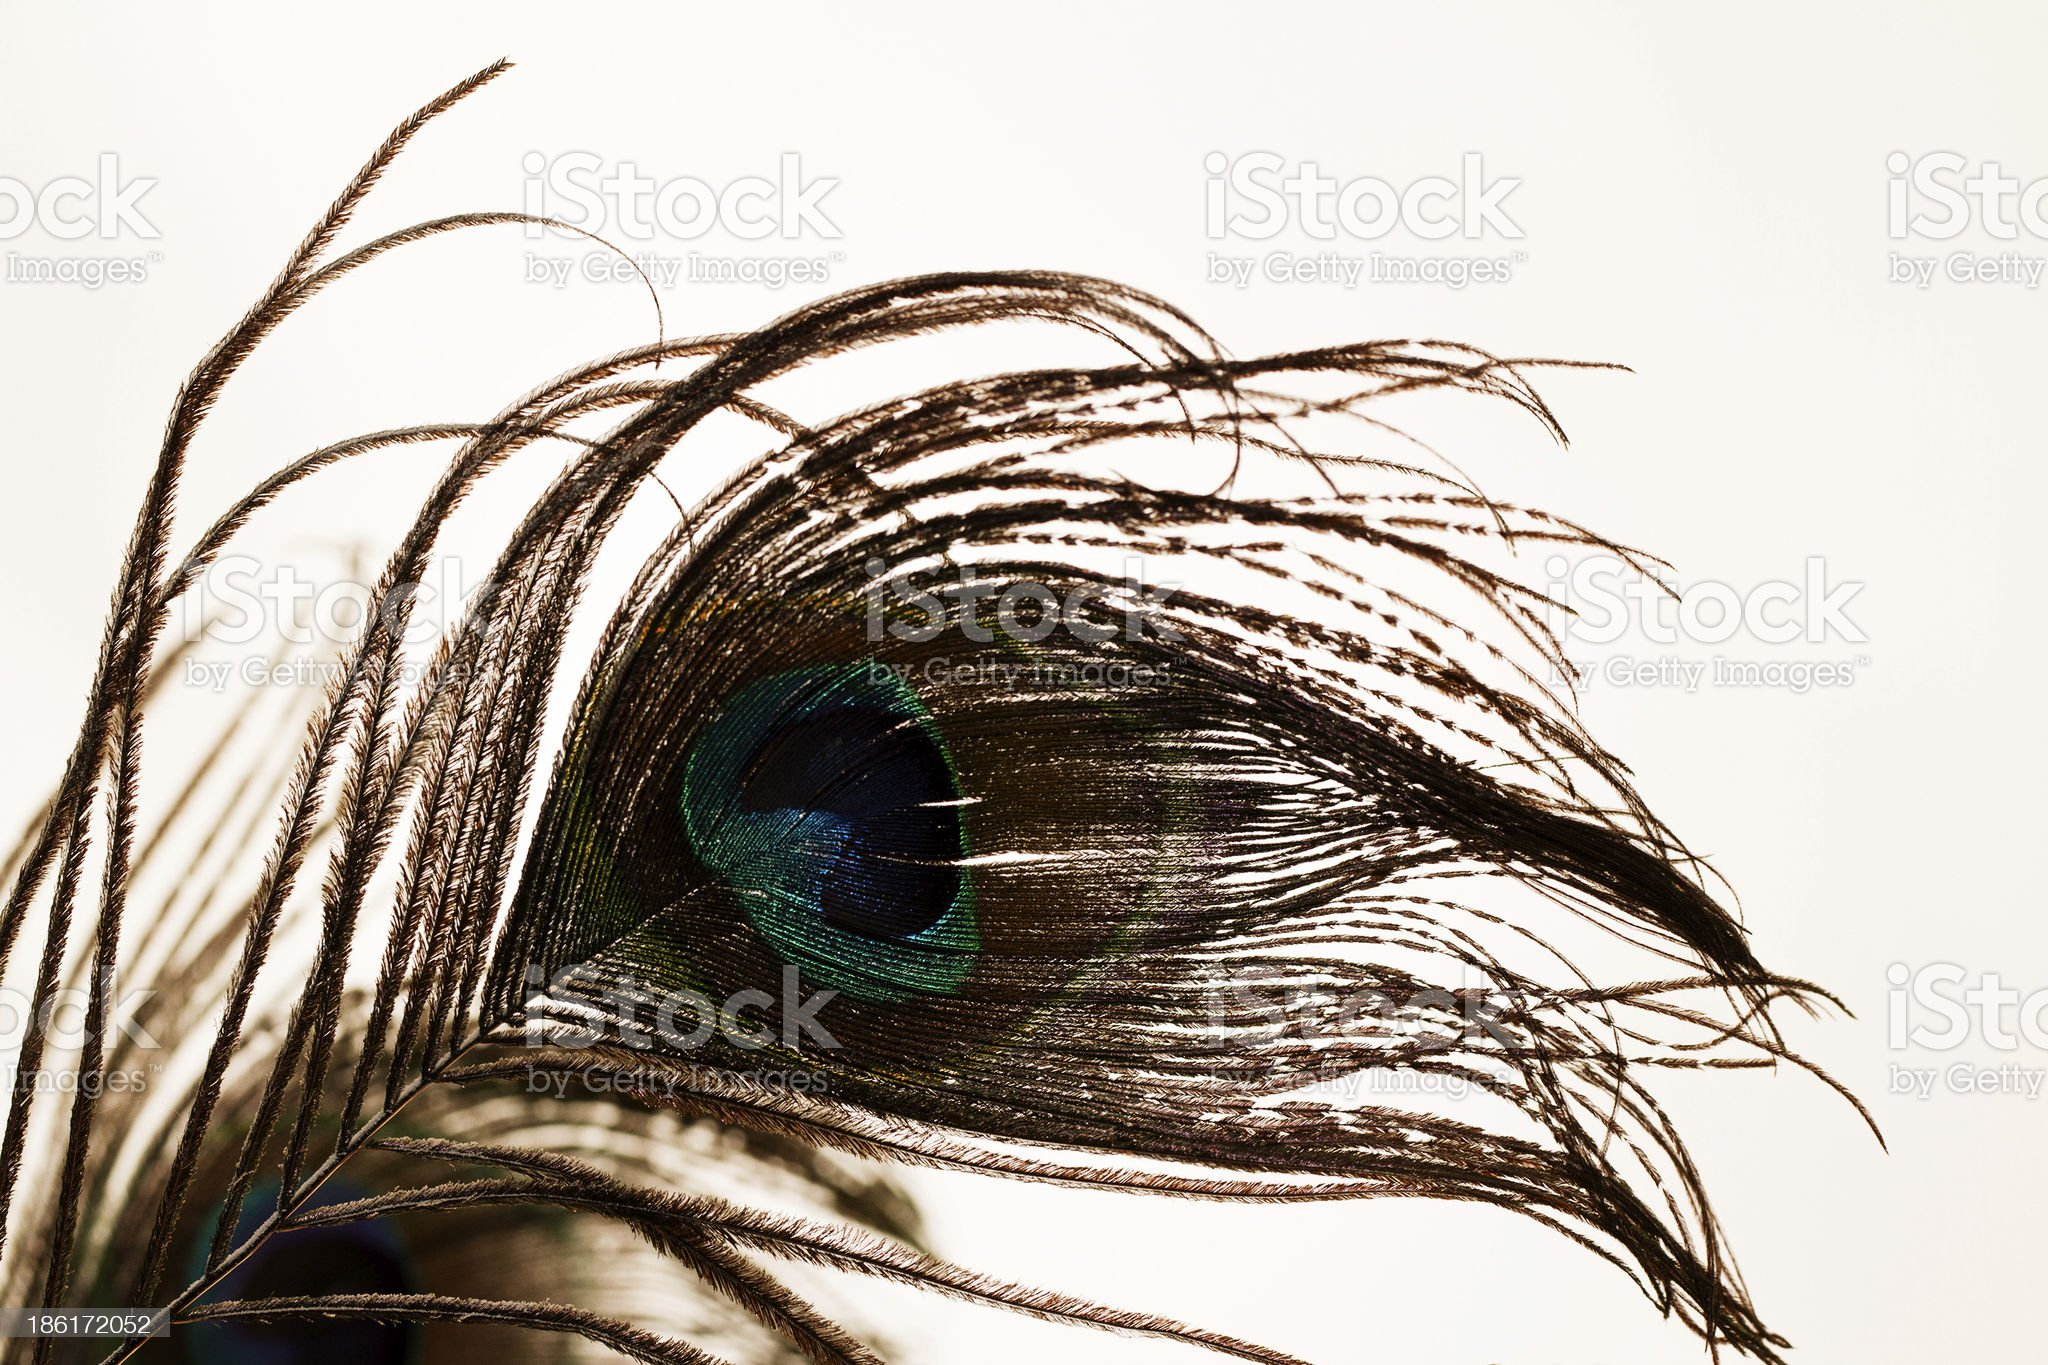 Feathers of peacock royalty-free stock photo